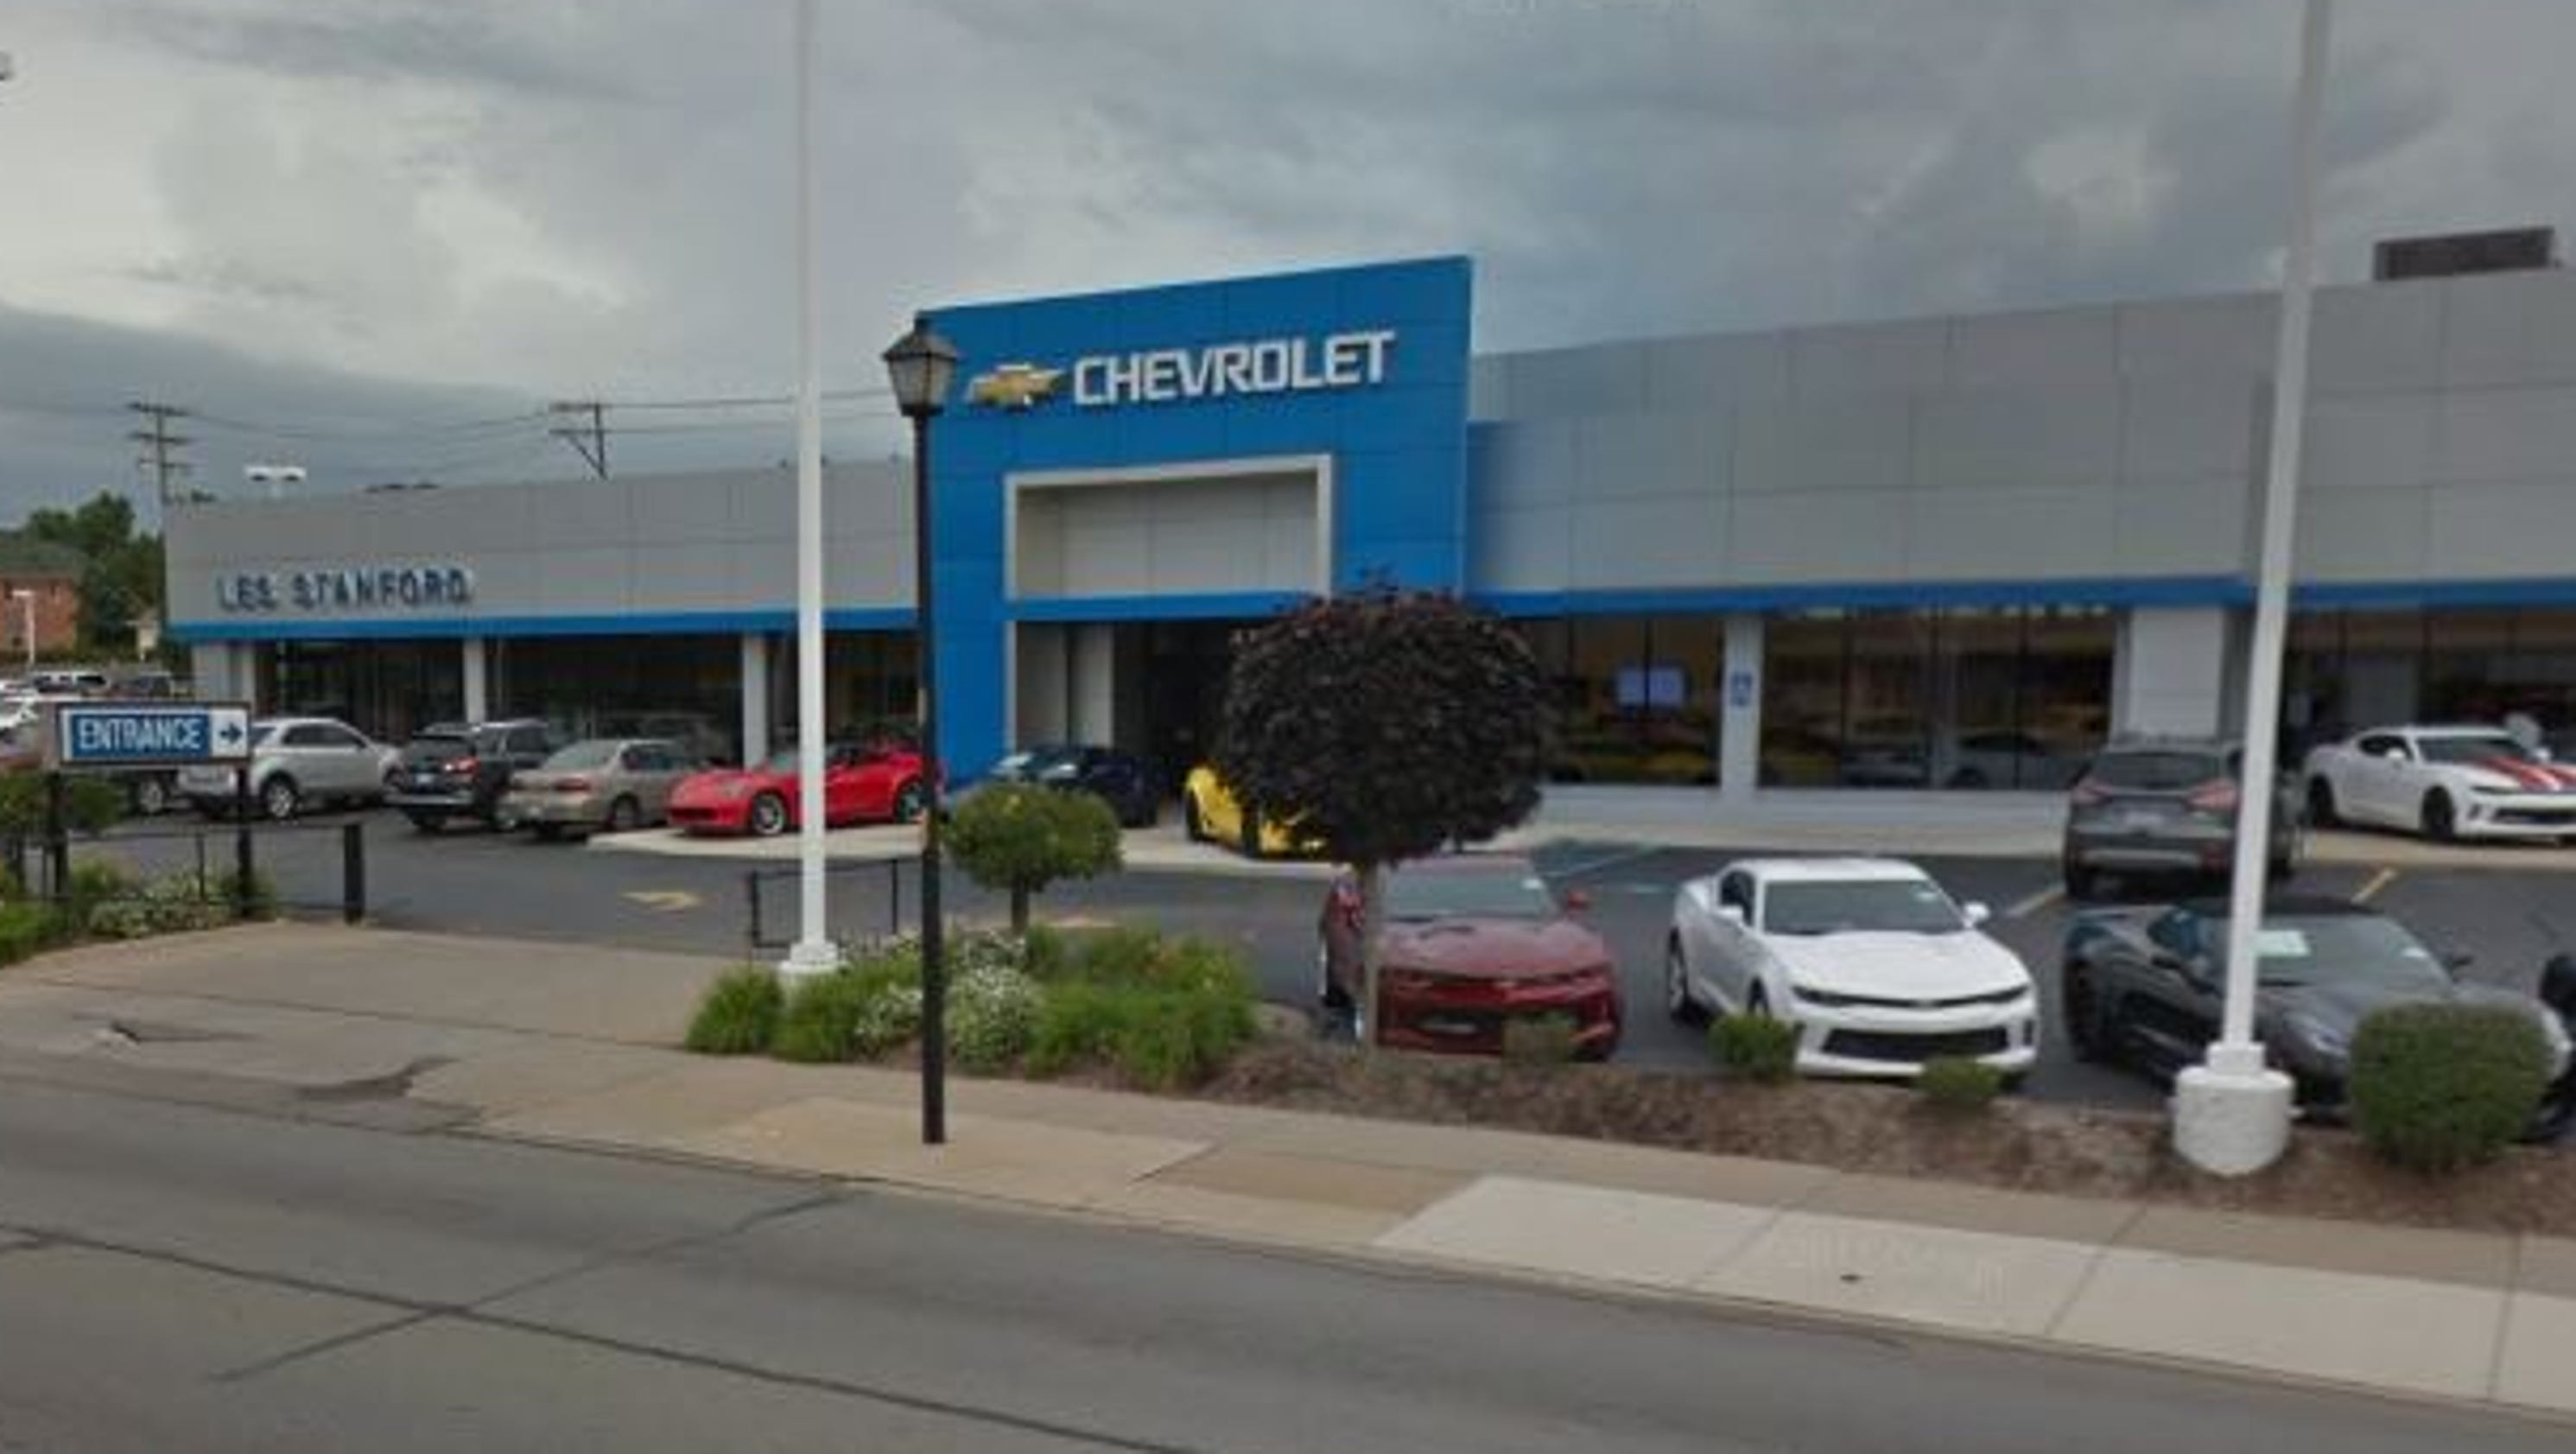 corvette thieves target les stanford chevrolet in dearborn. Black Bedroom Furniture Sets. Home Design Ideas